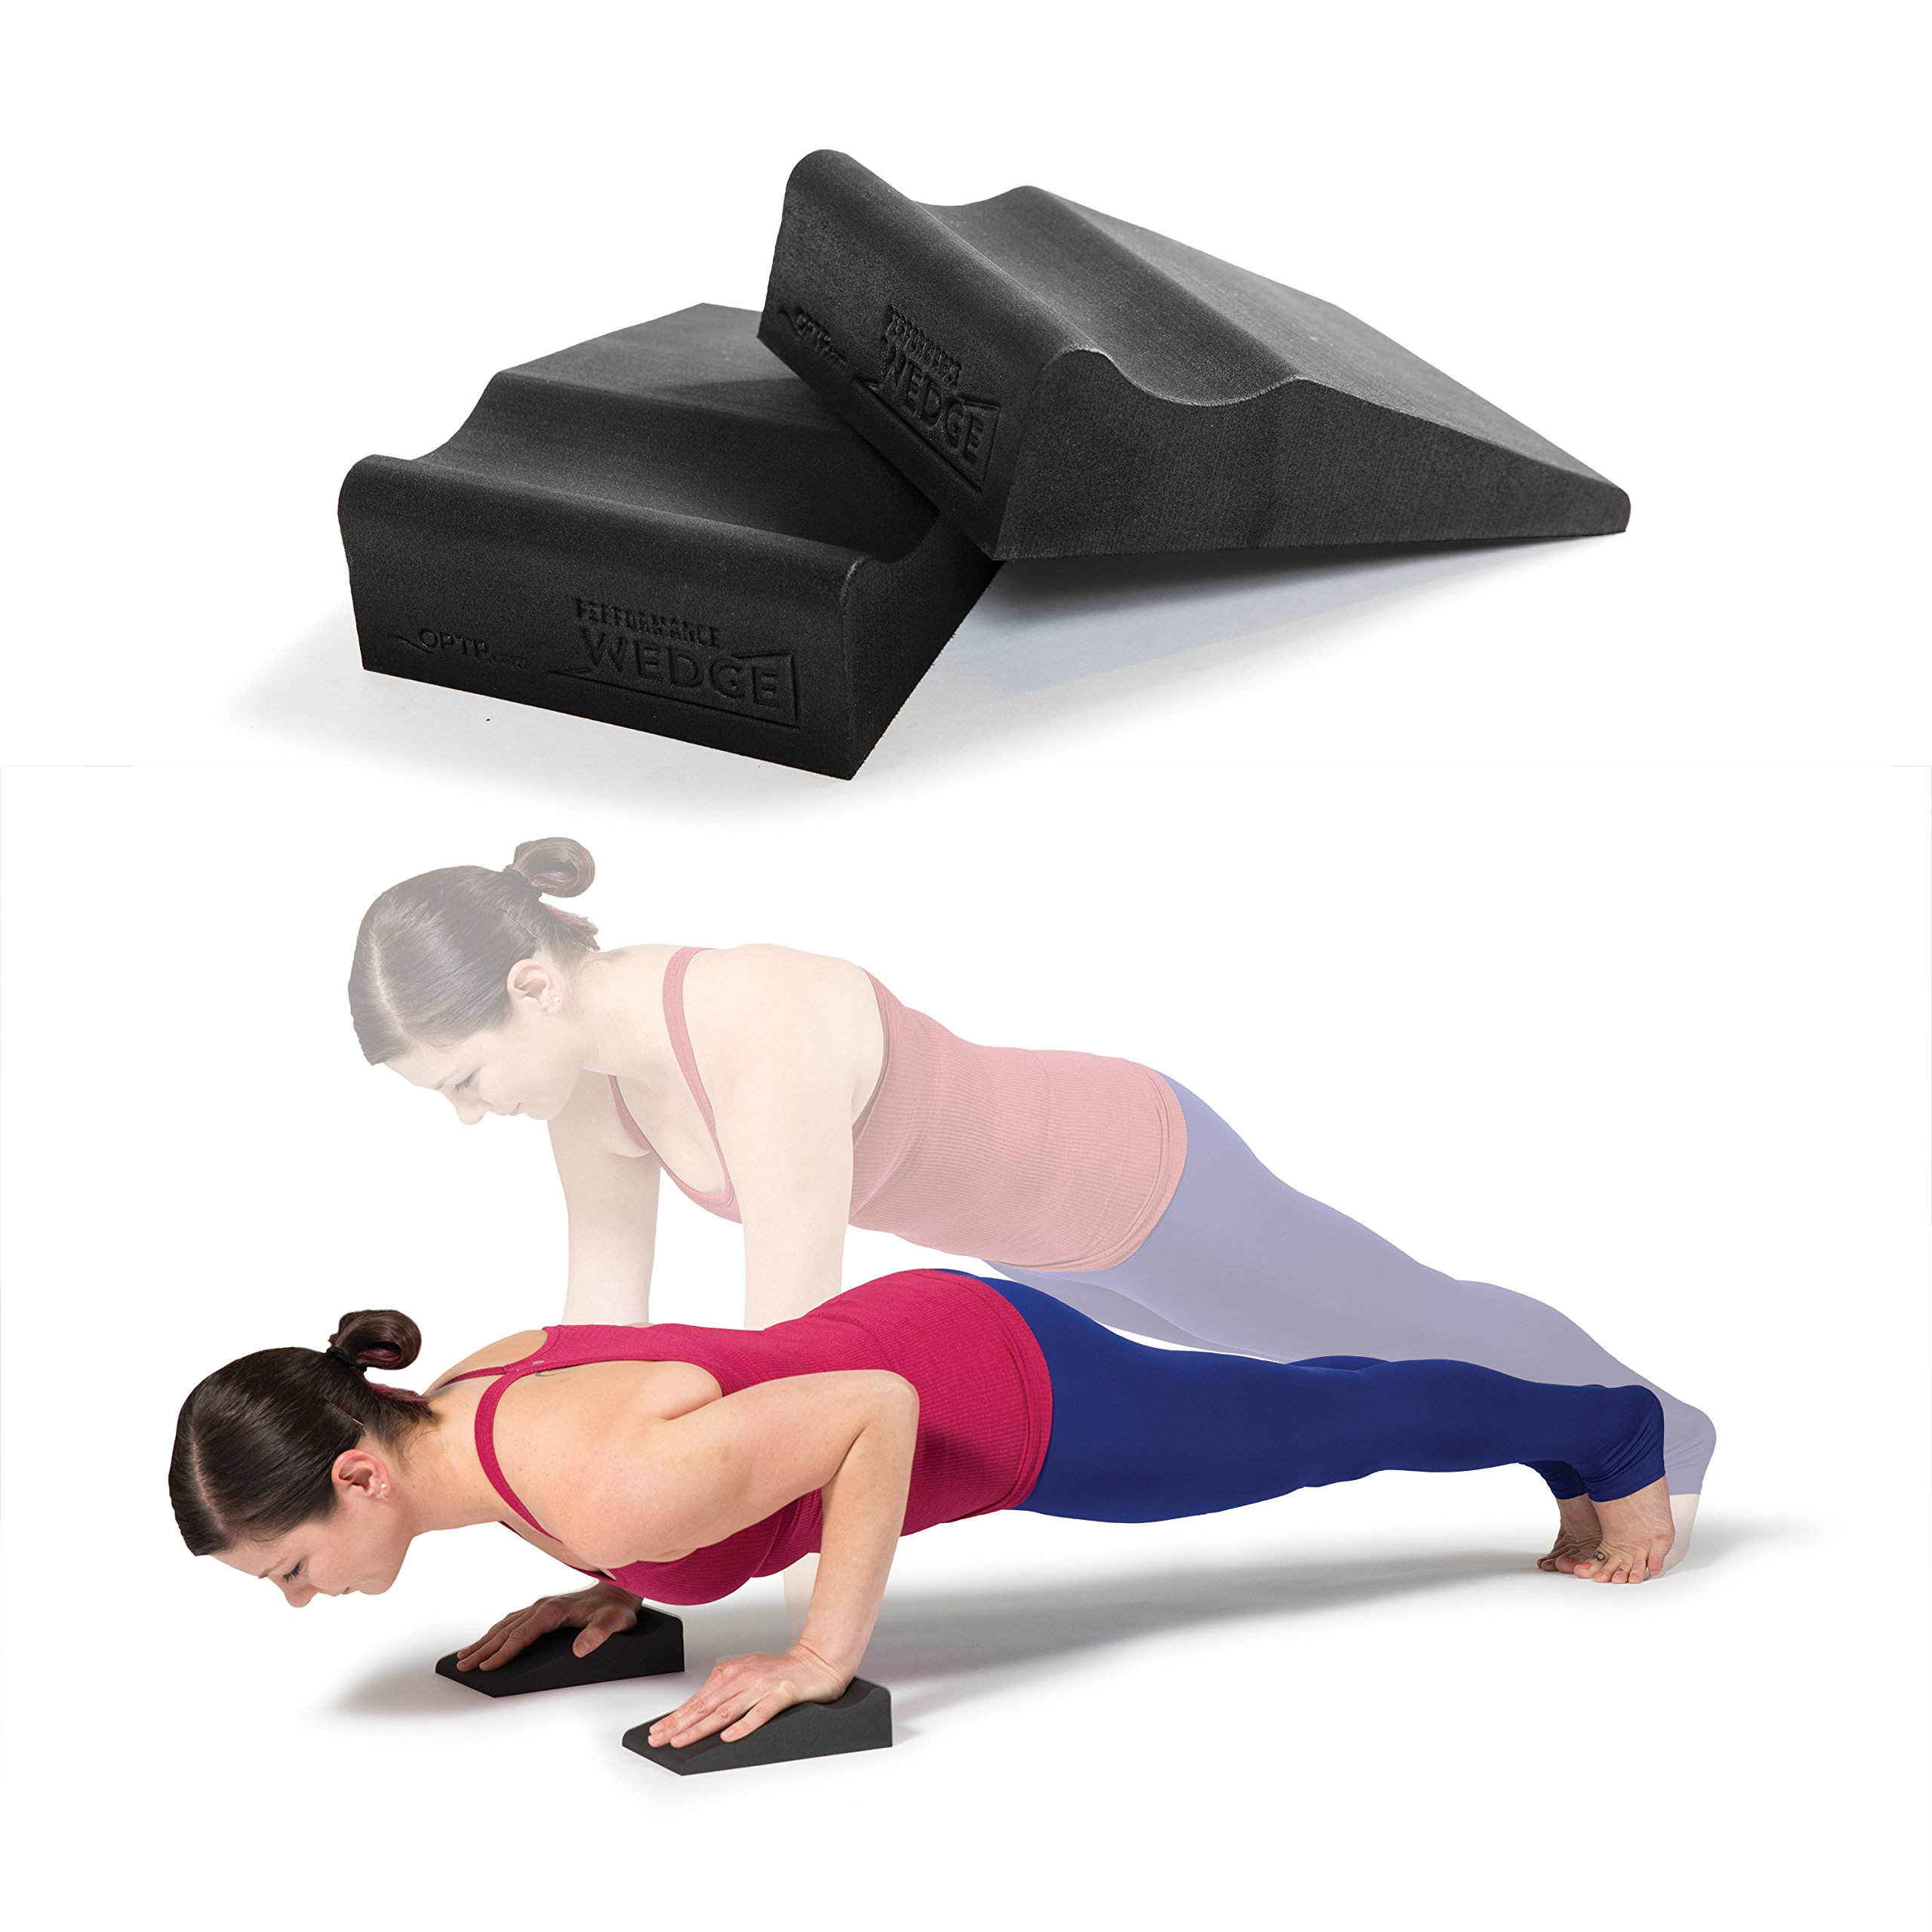 OPTP Performance Wedges – Foam Supports for Fitness, Yoga, Pilates, and Physical Therapy Exercise: Ideal for Squats, Planks, and Pushups